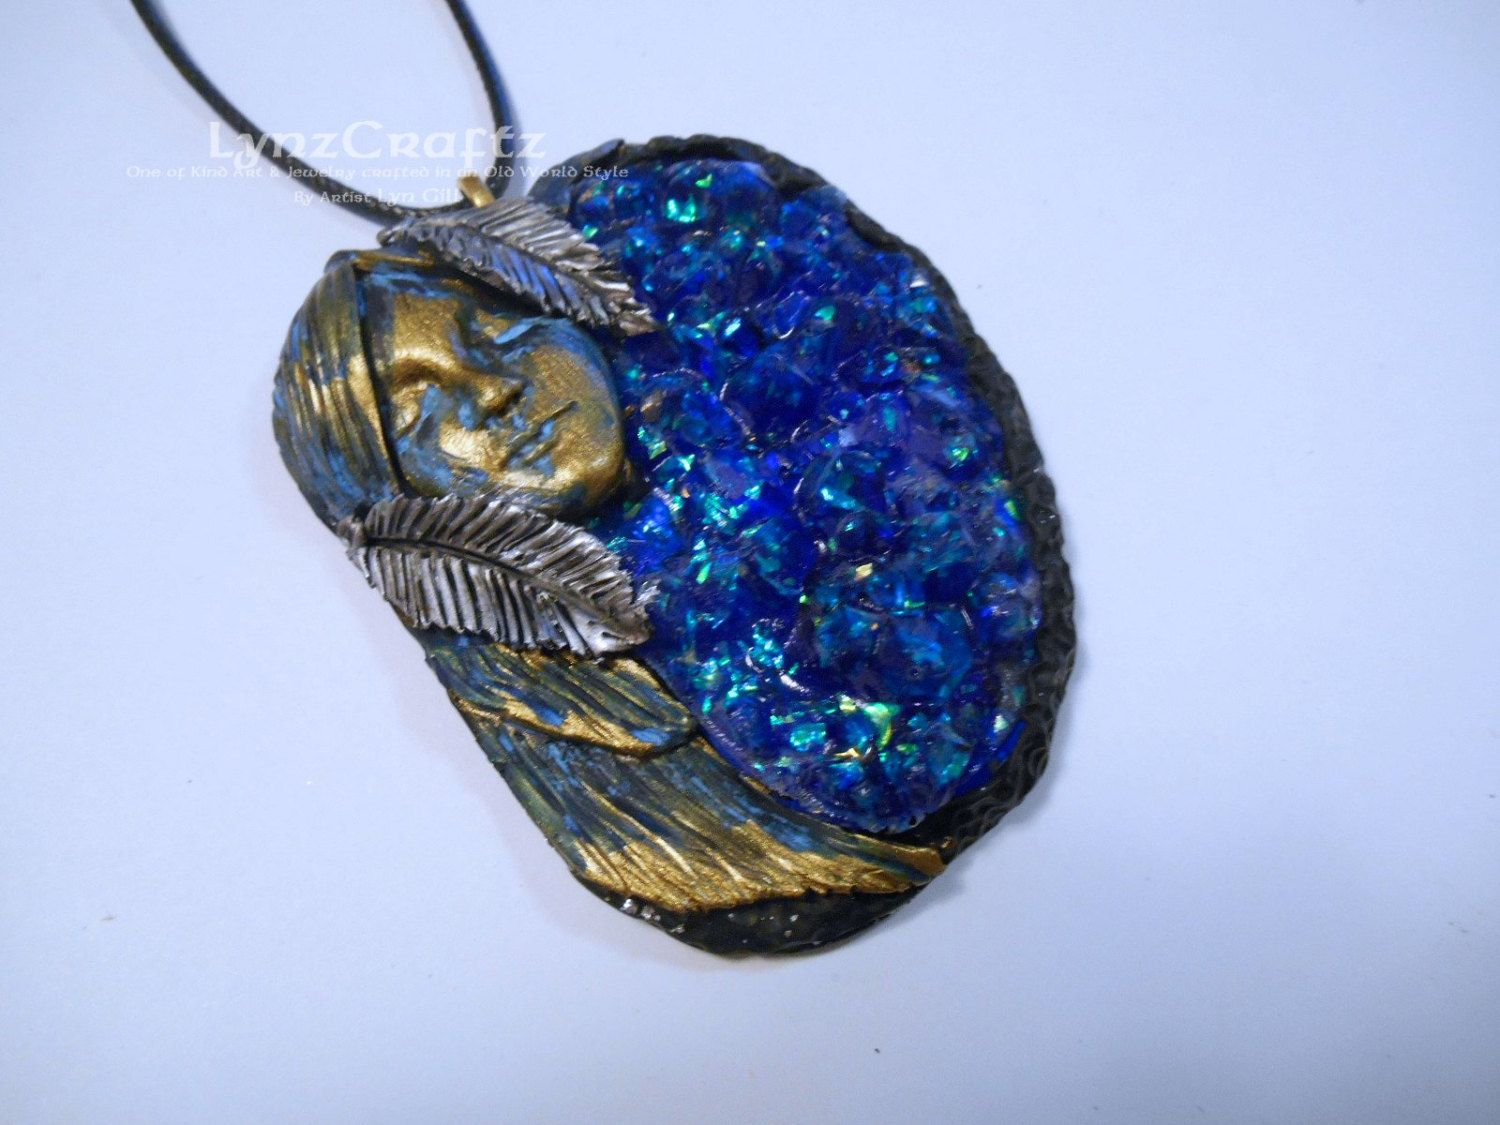 Spirit of the Stones gold & blue polymer clay and resin jewelry pendant necklace handmade One of a Kind by LynzCraftz on Etsy